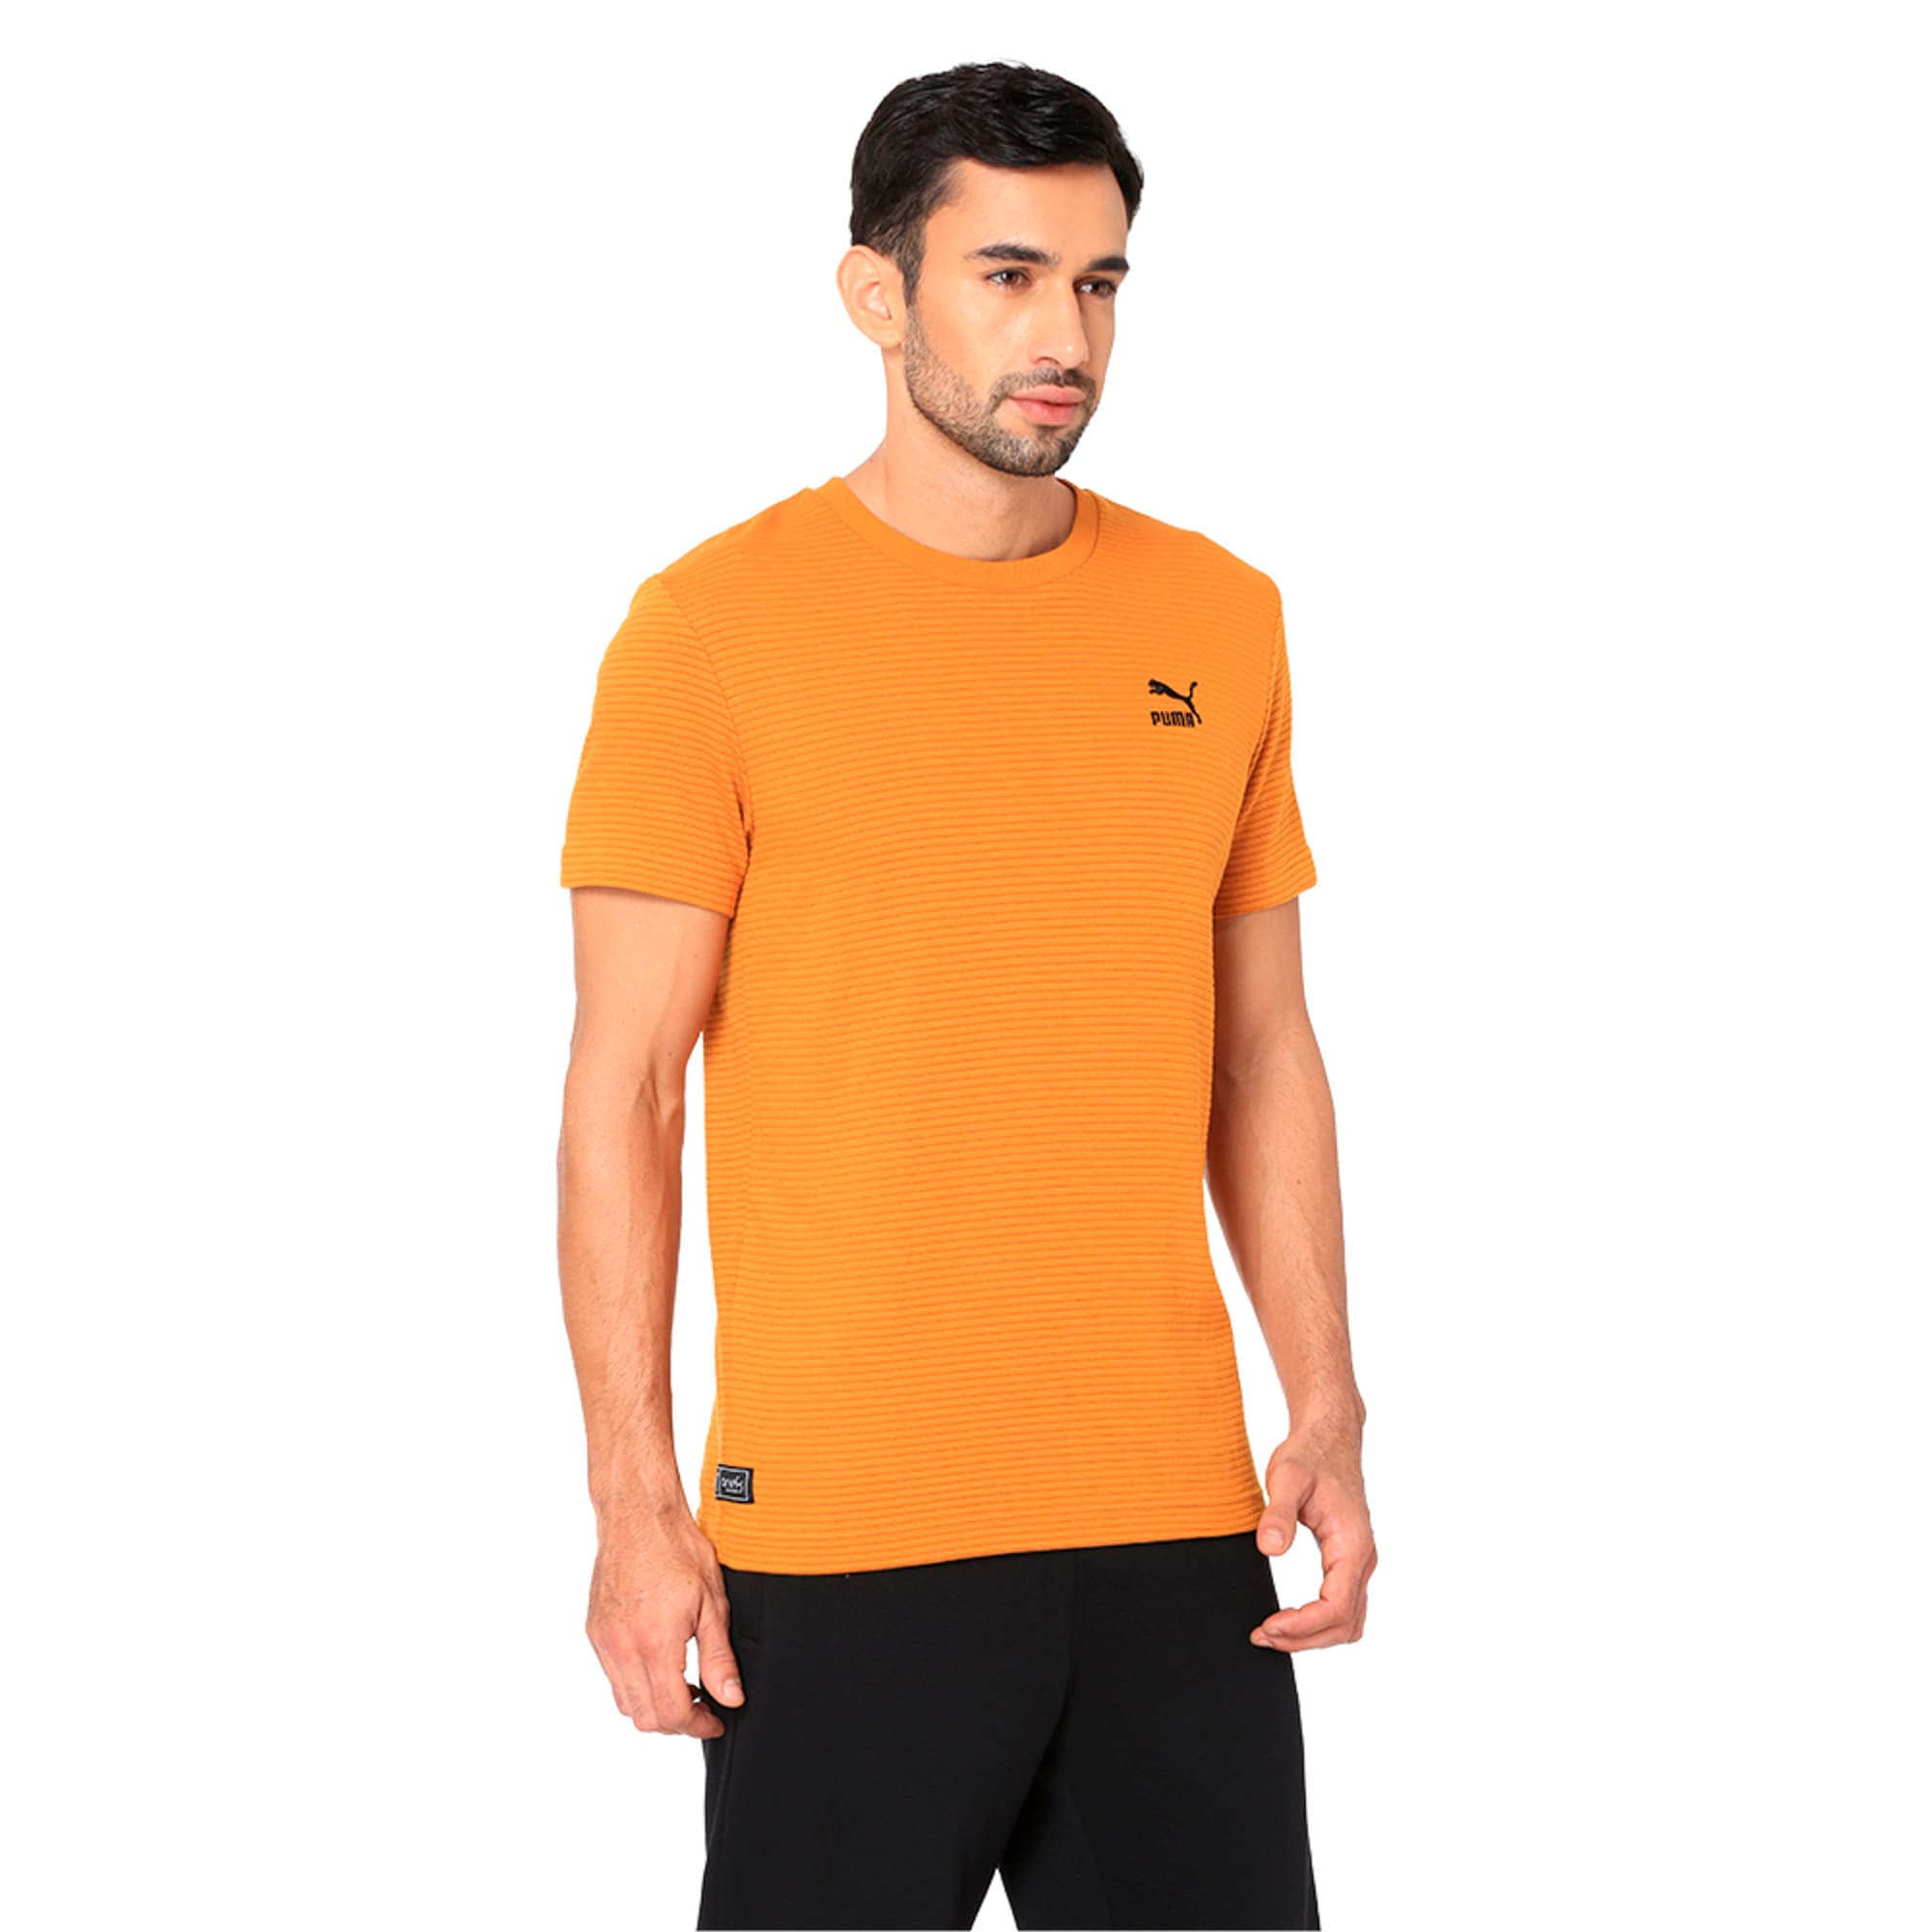 Thumbnail 3 of One8 VK Men's Tee, Buckthorn Brown, medium-IND